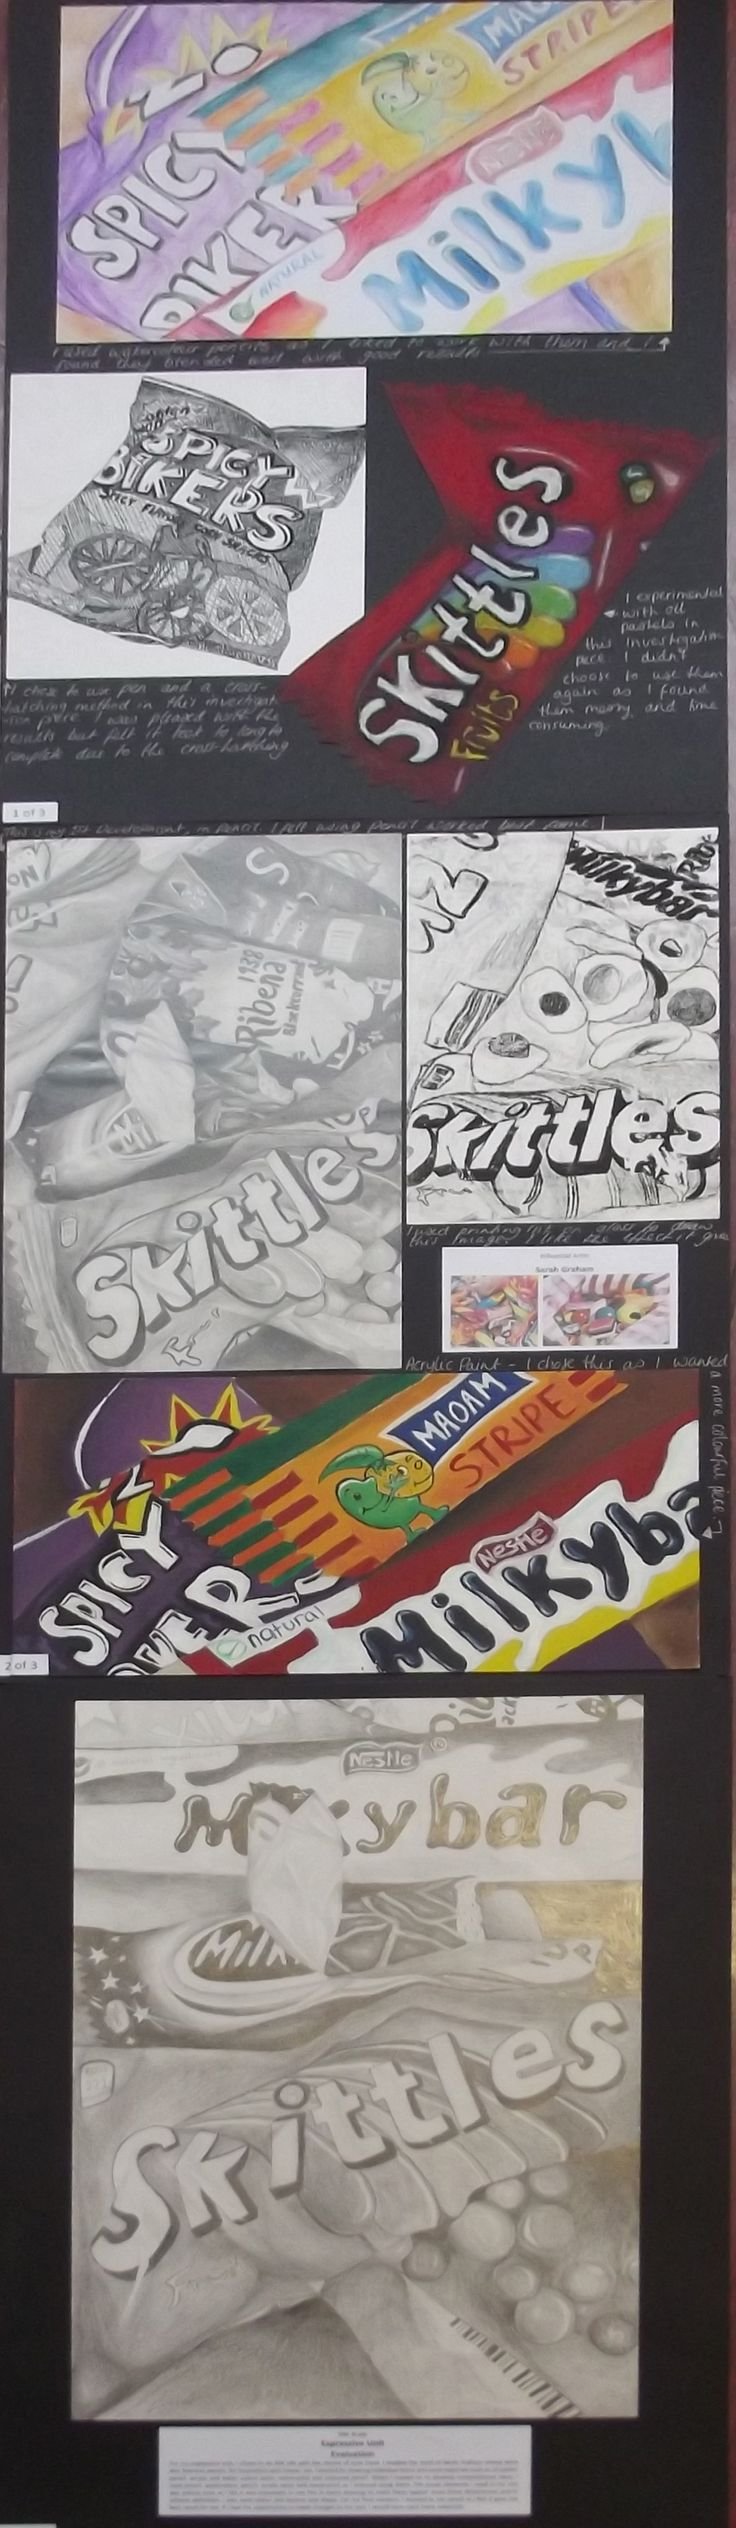 s4 national 5 expressive folio, still life - junk food theme